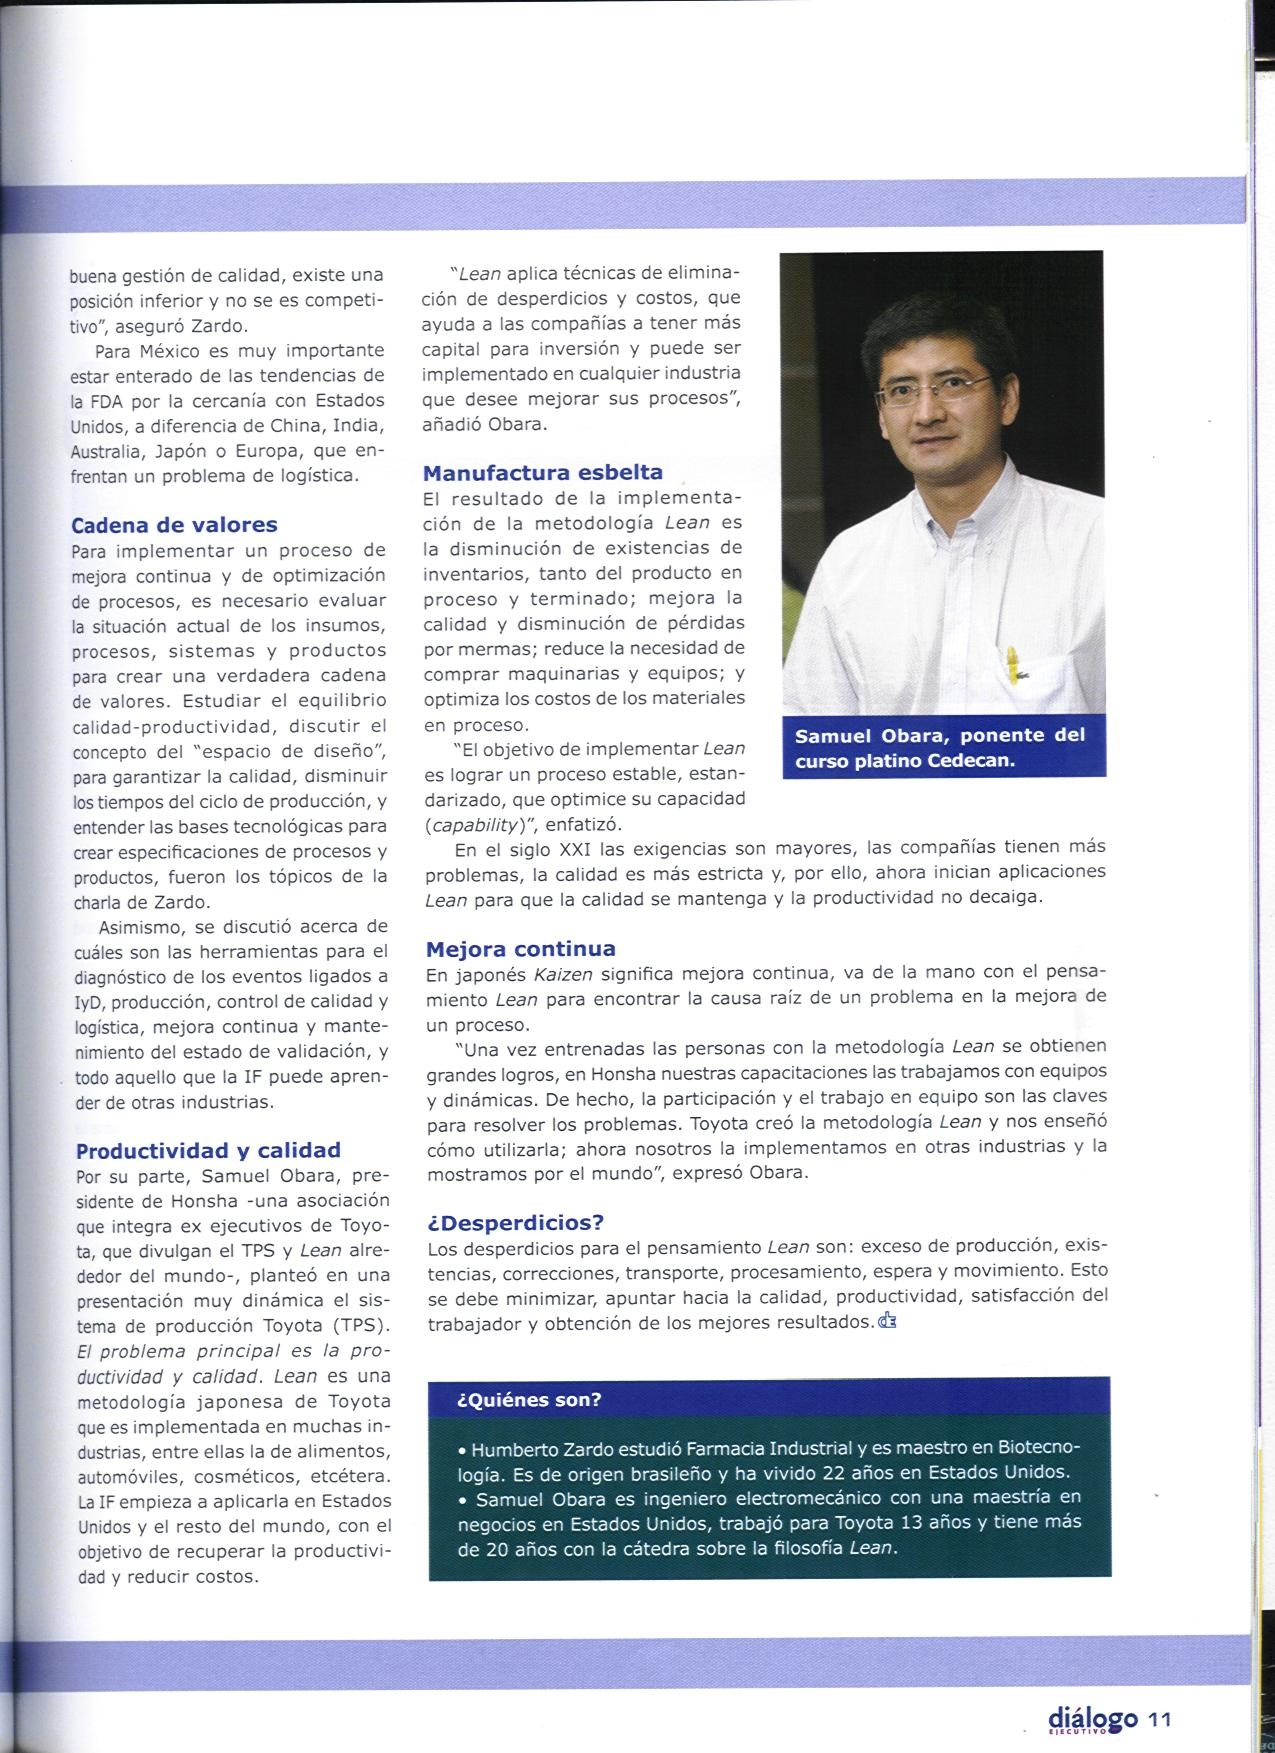 Pharma MX - nov-08 - pg 2.